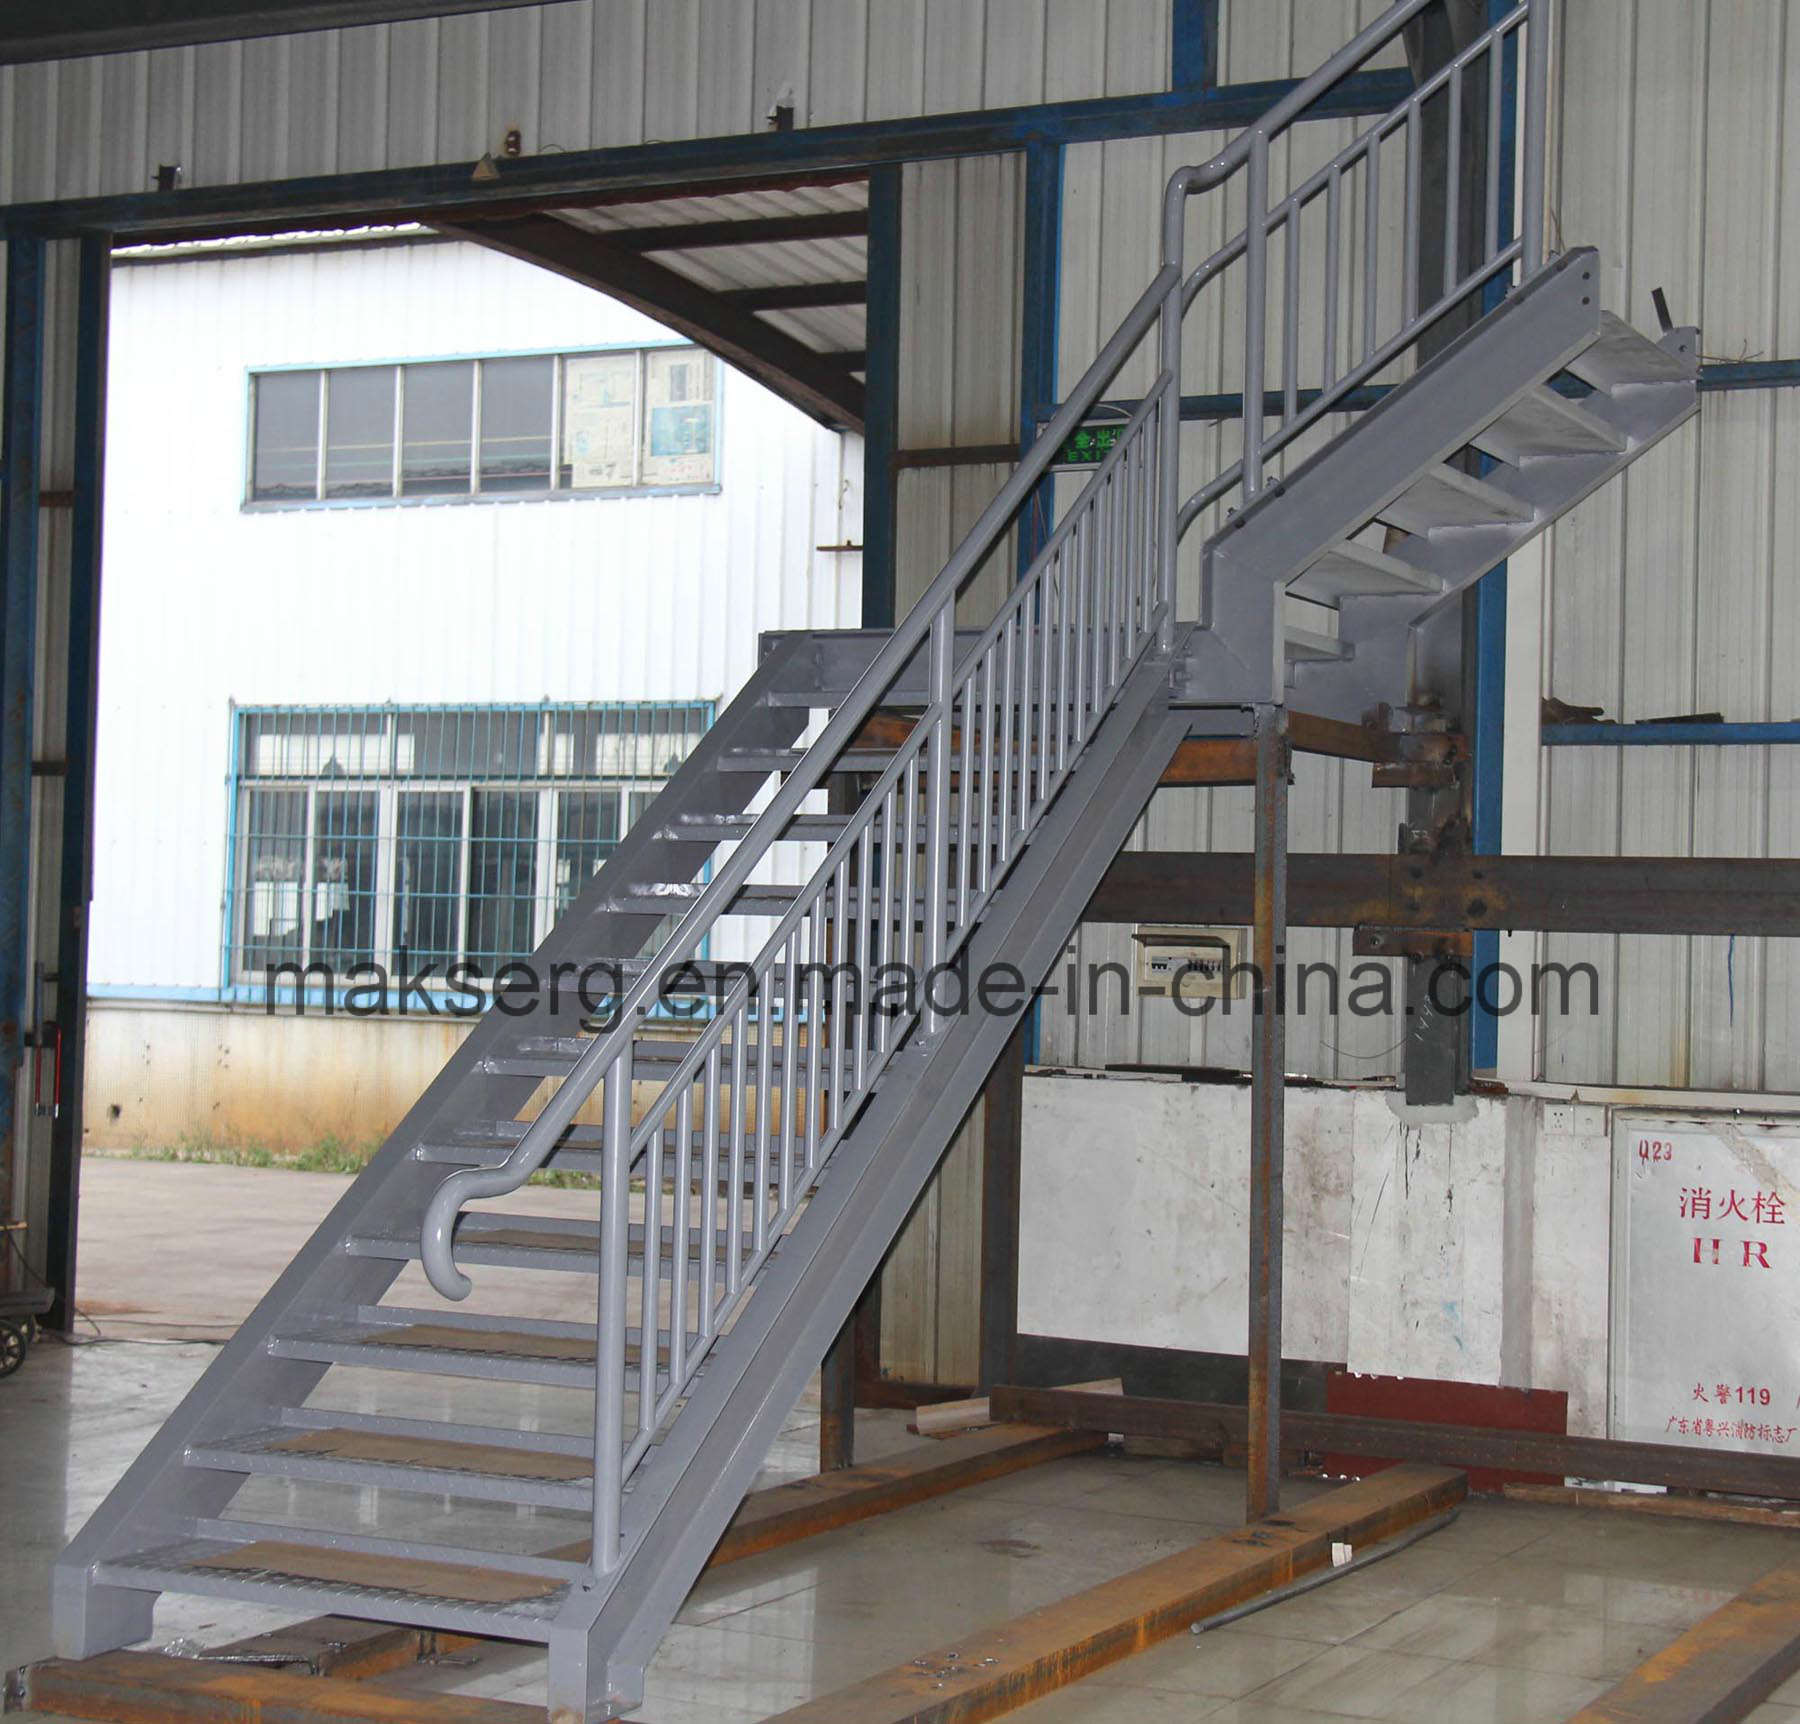 Galvanized Steel Stairs with Handrails